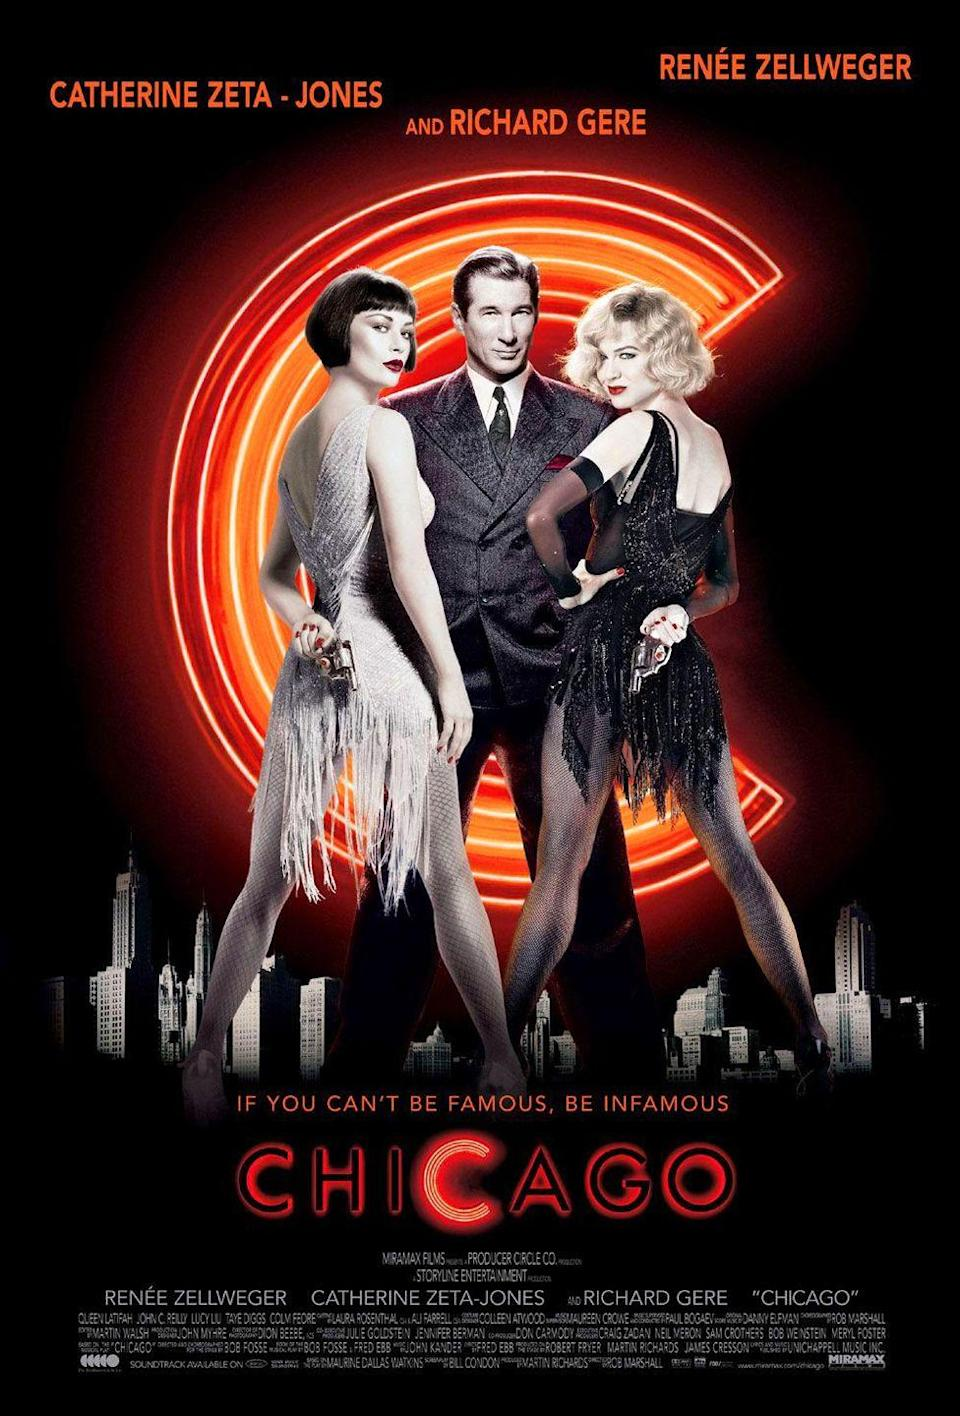 """<p><em><a href=""""https://www.oprahdaily.com/entertainment/a27056228/bob-fosse-gwen-verdon-true-story/"""" rel=""""nofollow noopener"""" target=""""_blank"""" data-ylk=""""slk:Chicago"""" class=""""link rapid-noclick-resp"""">Chicago </a></em>is a prime example of how to do a stage-to-screen adaptation flawlessly. Catherine Zeta-Jones and <a href=""""https://www.oprahdaily.com/entertainment/a27420426/renee-zellweger-judy-garland-transformation-photo/"""" rel=""""nofollow noopener"""" target=""""_blank"""" data-ylk=""""slk:Renée Zellweger"""" class=""""link rapid-noclick-resp"""">Renée Zellweger</a> co-star as two lounge singers who get more fame than they ever had before when they're put on trial for murder. Richard Gere's Billy Flynn is the lawyer hired to defend them and the man responsible for turning the whole thing into a media frenzy. Three words: Cell Block Tango.</p><p><a class=""""link rapid-noclick-resp"""" href=""""https://www.amazon.com/Chicago-Catherine-Zeta-Jones/dp/B003QS62SM/ref=sr_1_2?tag=syn-yahoo-20&ascsubtag=%5Bartid%7C10072.g.27734413%5Bsrc%7Cyahoo-us"""" rel=""""nofollow noopener"""" target=""""_blank"""" data-ylk=""""slk:WATCH NOW"""">WATCH NOW</a></p>"""